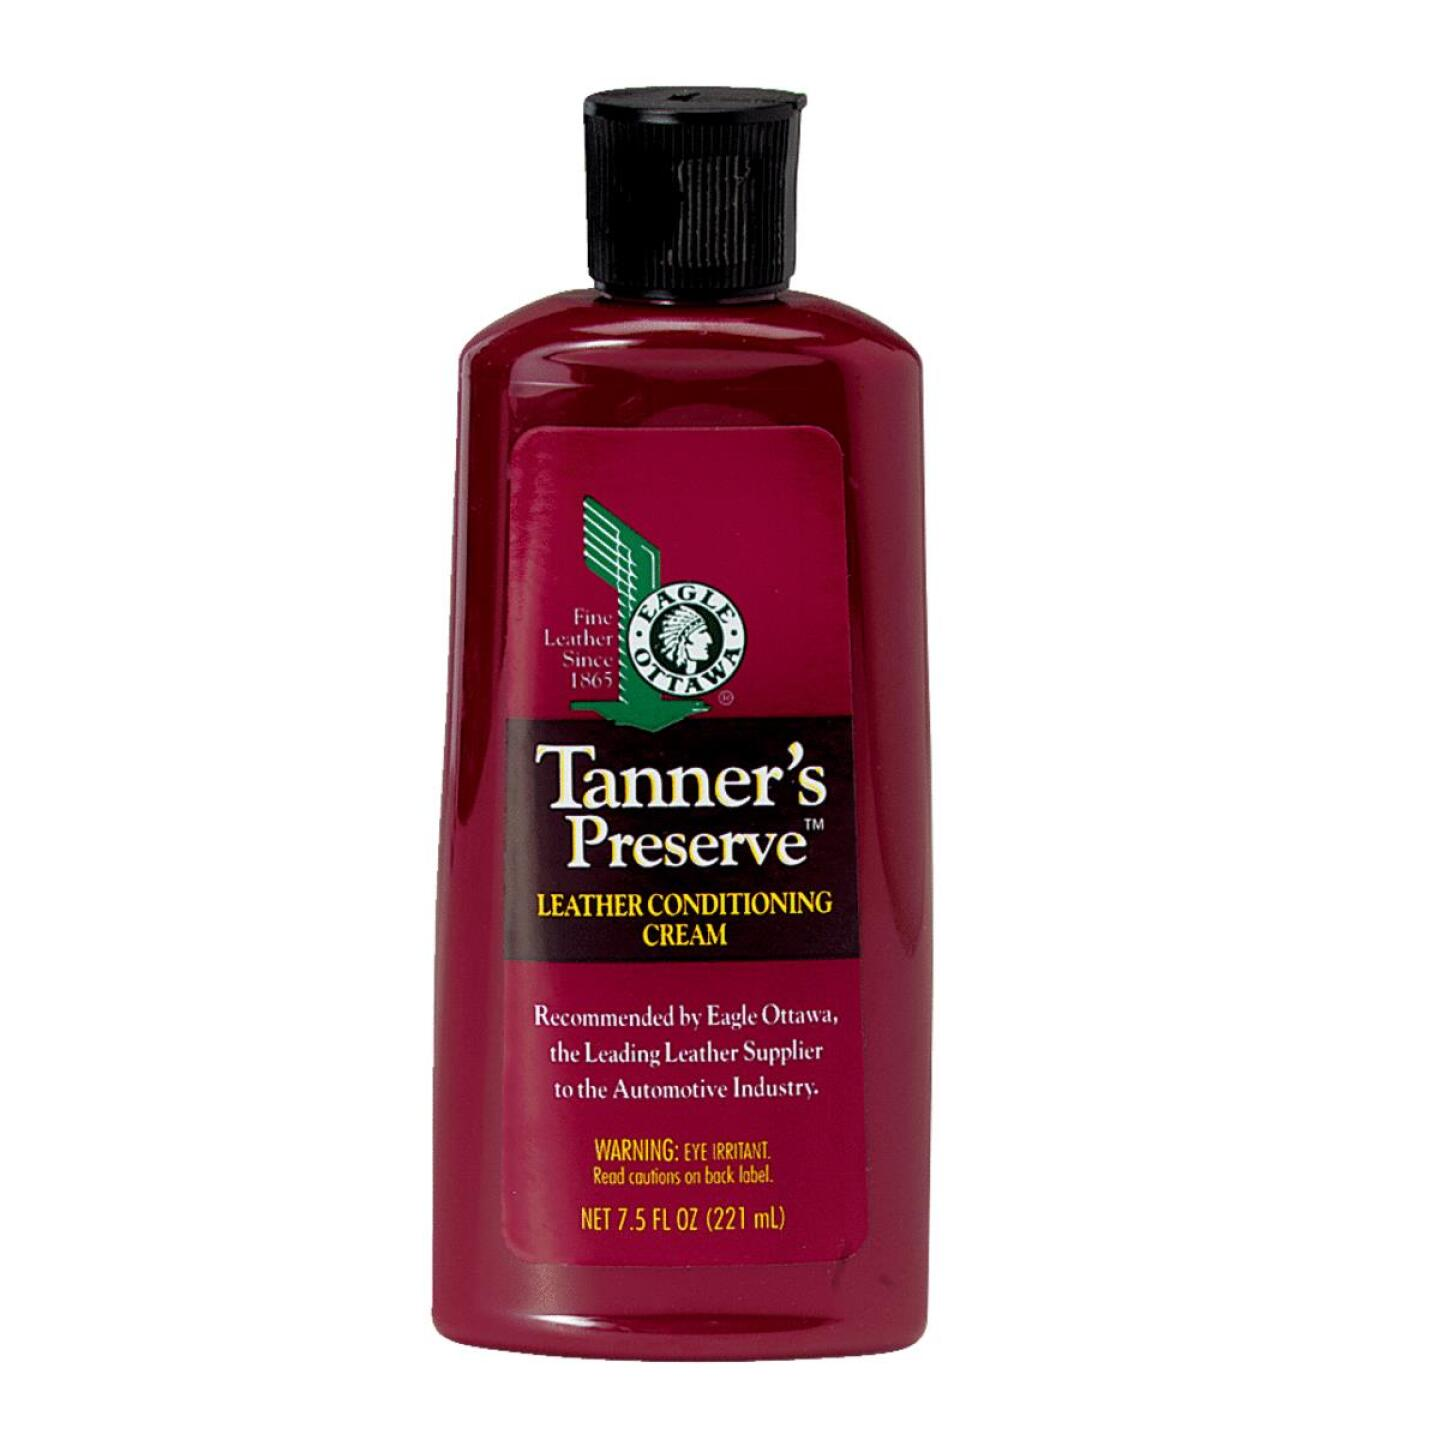 Tanners Preserve 7.5 Oz. Leather Care Conditioner Image 1